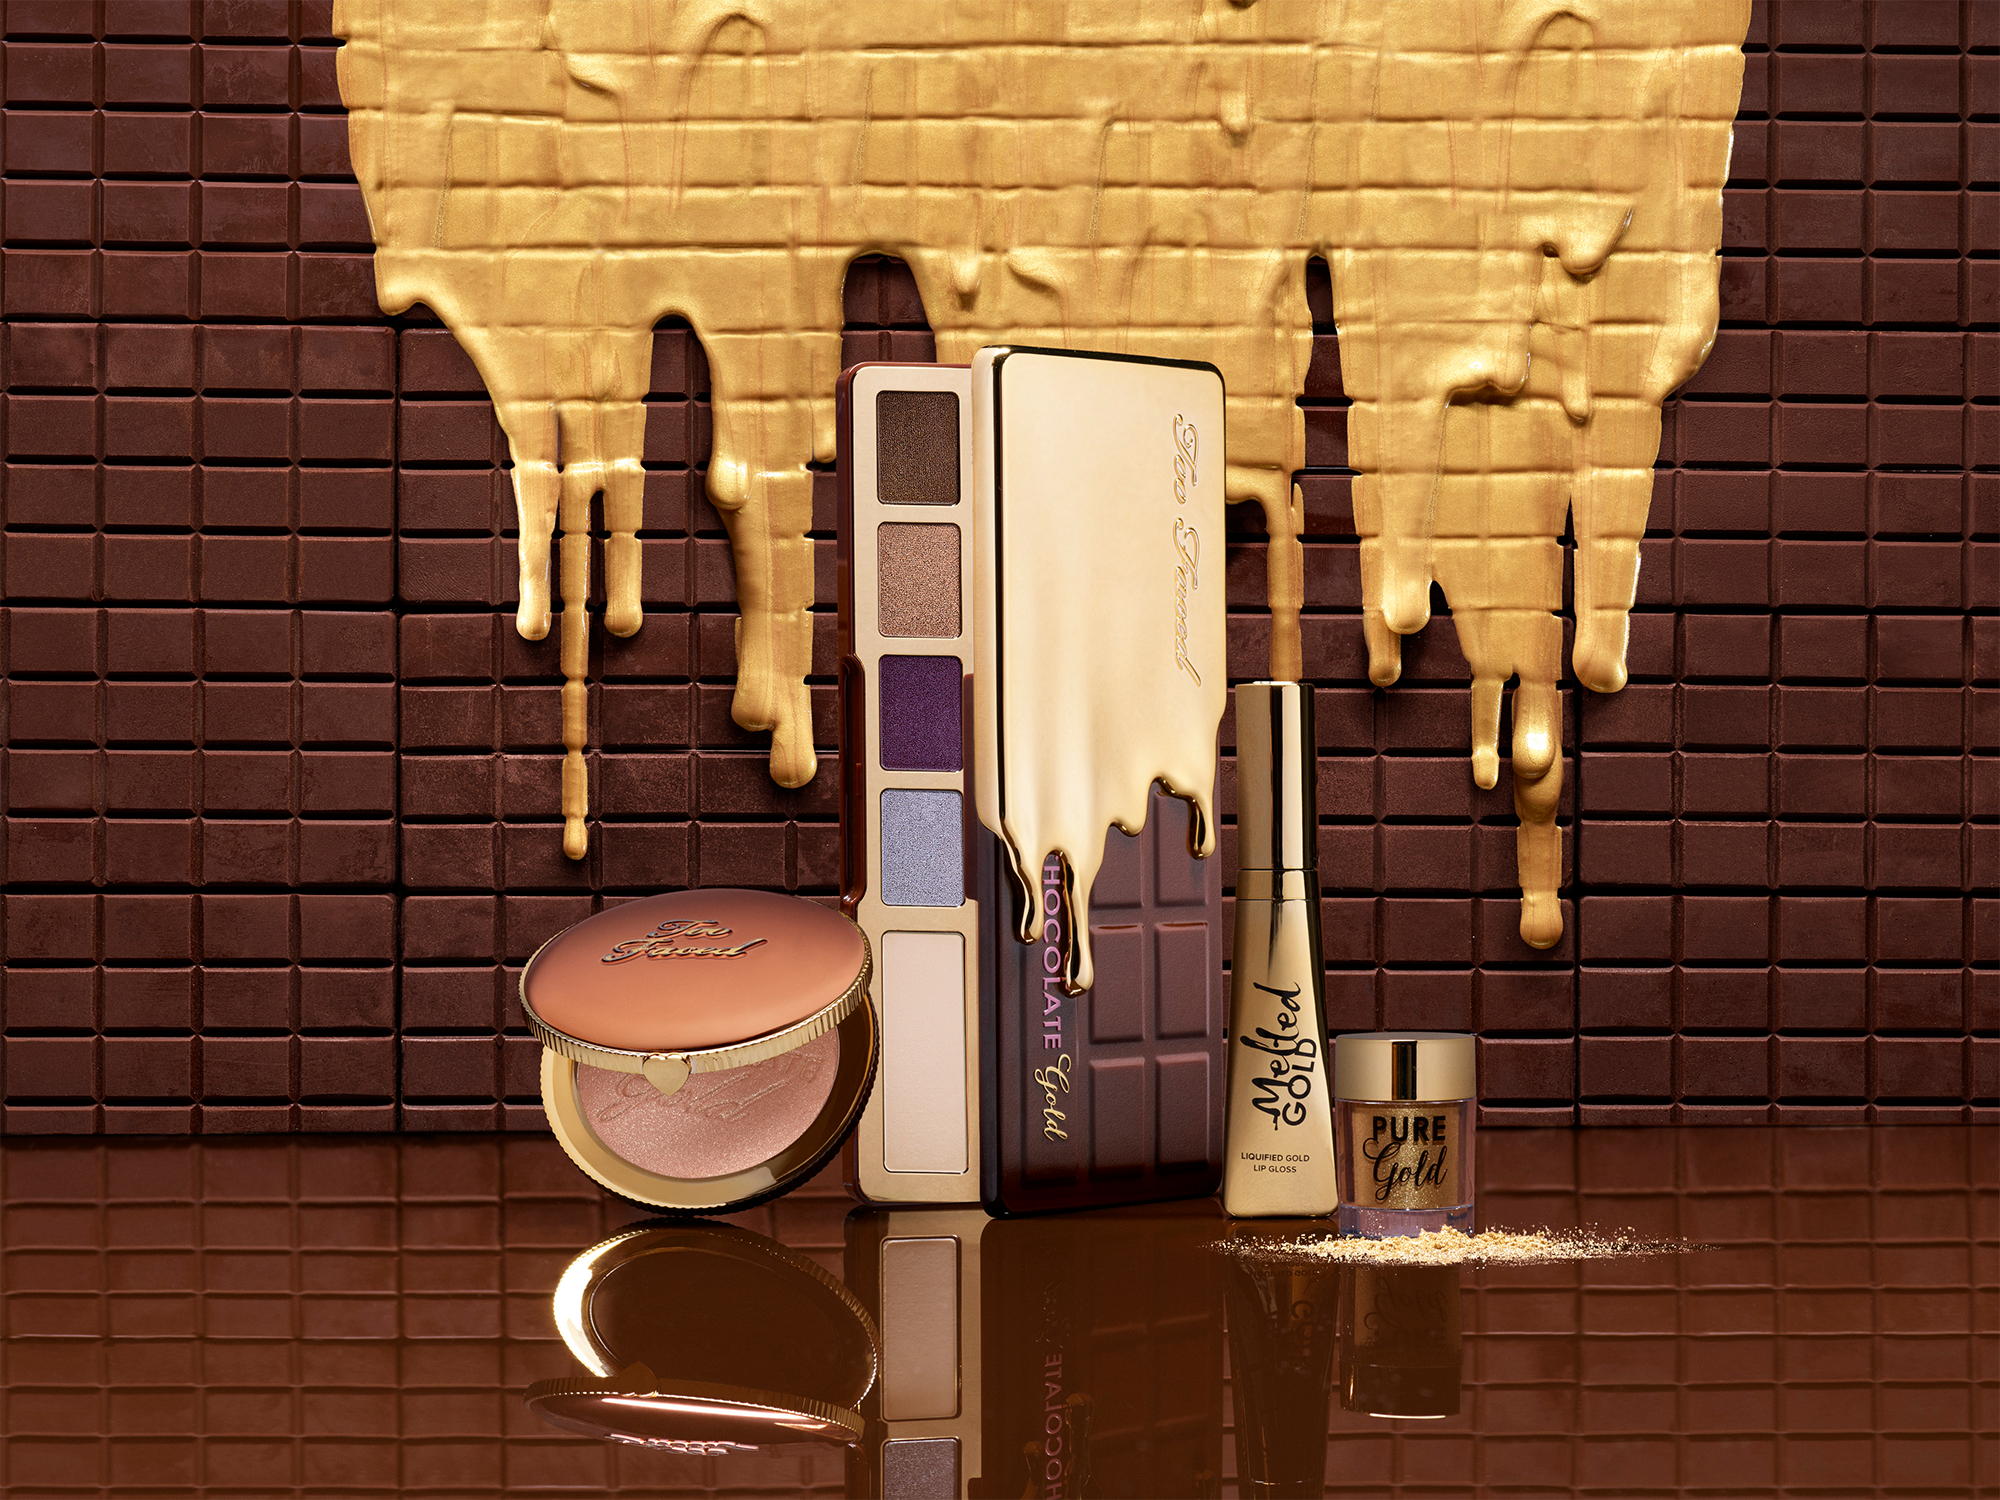 Chocolate_Gold_Family_Base_Perspective_Plate_0407_05.png